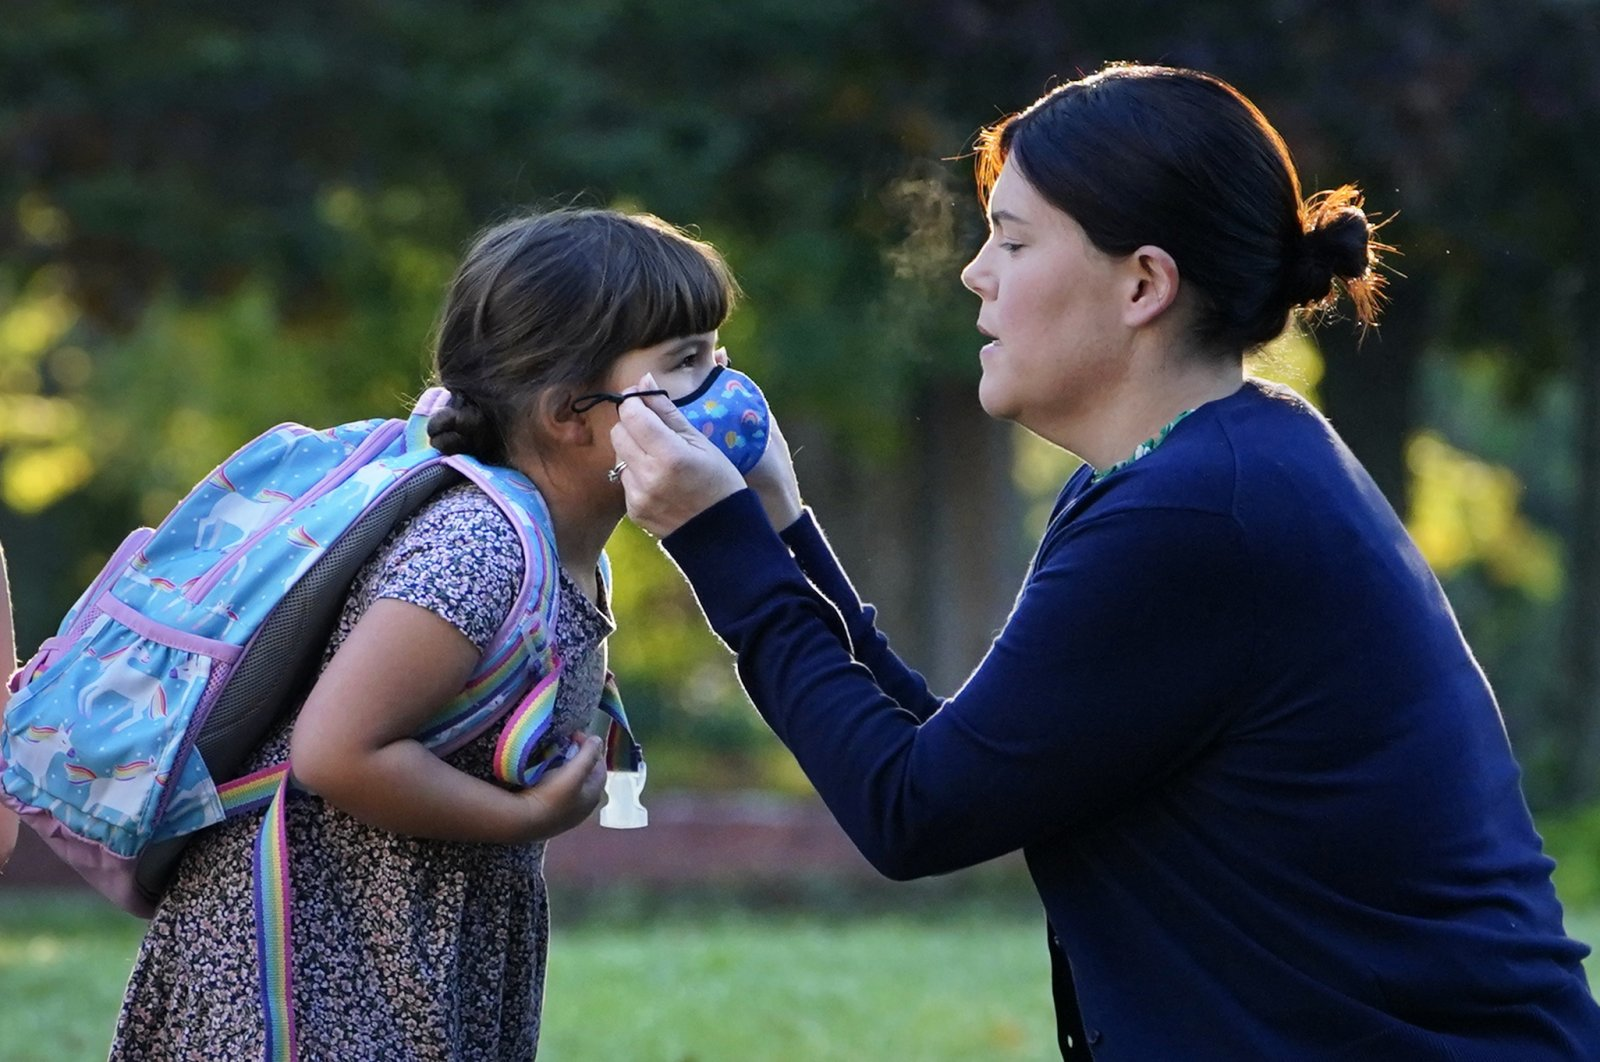 Sarah Staffiere adjusts a face covering on her daughter, Natalie, before school, in Waterville, Maine, U.S., Oct. 7, 2021. (AP Photo)